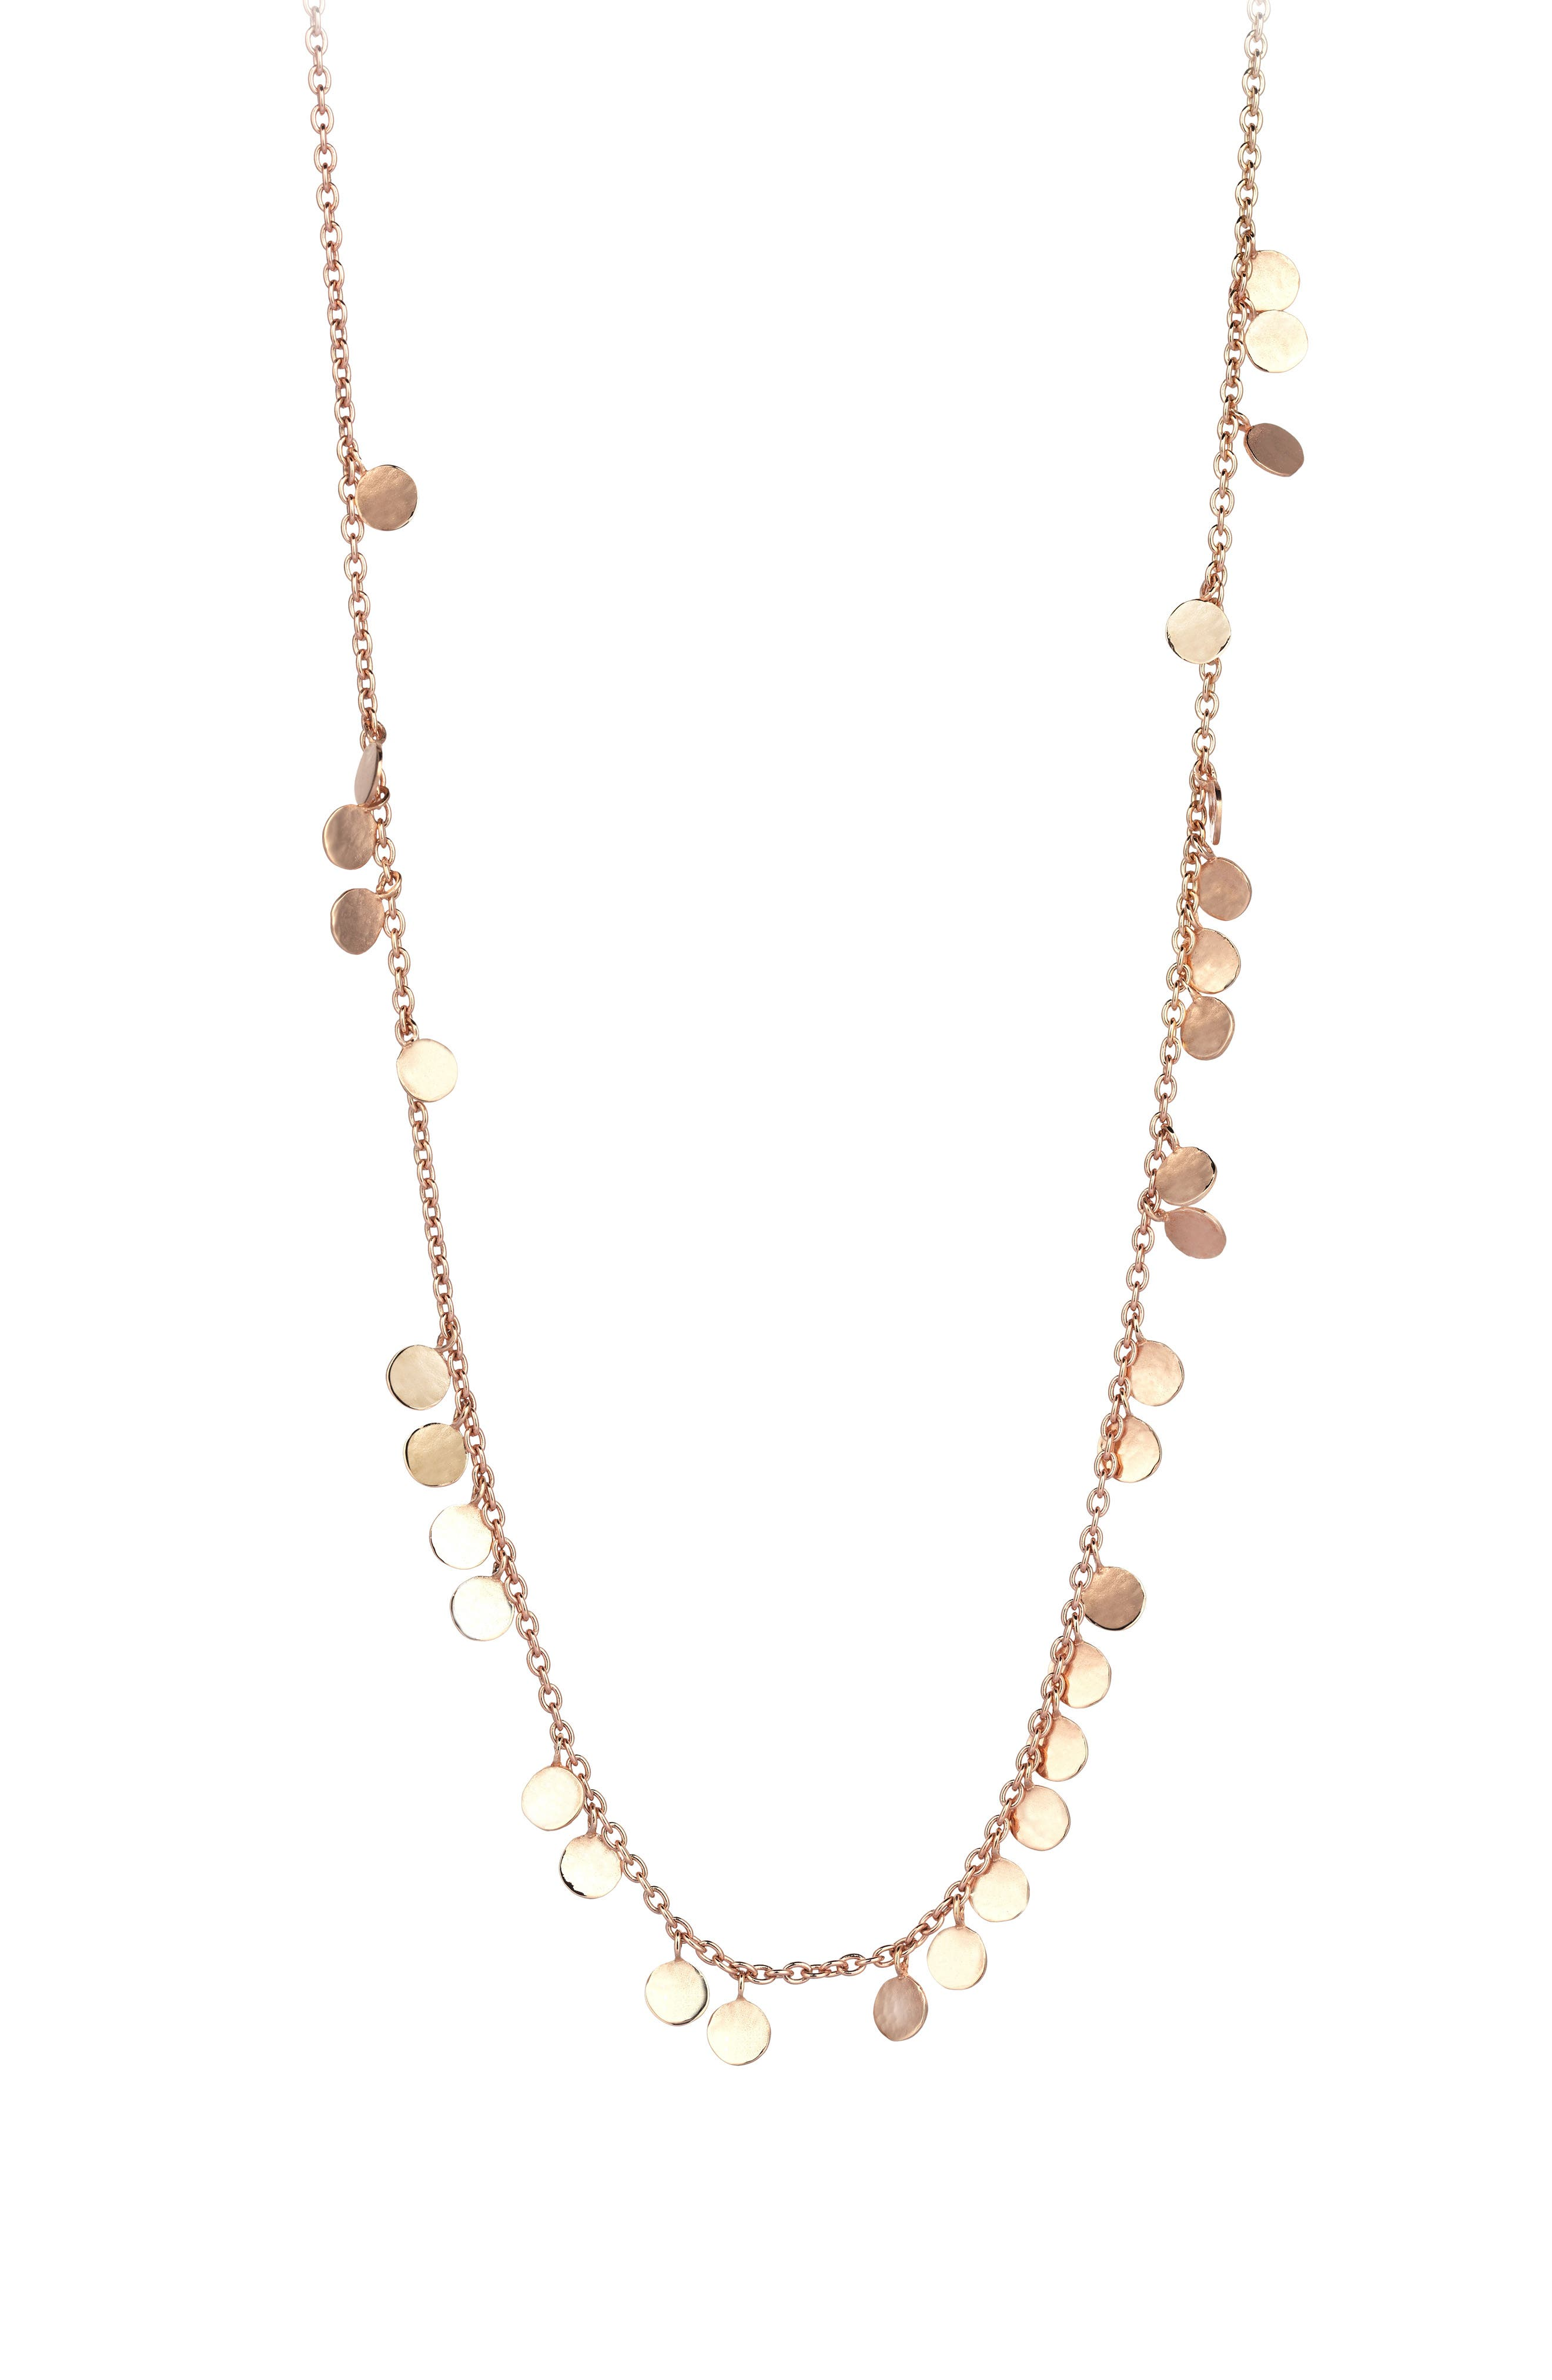 KISMET BY MILKA Dangling Circles Pendant Necklace, Main, color, ROSE GOLD